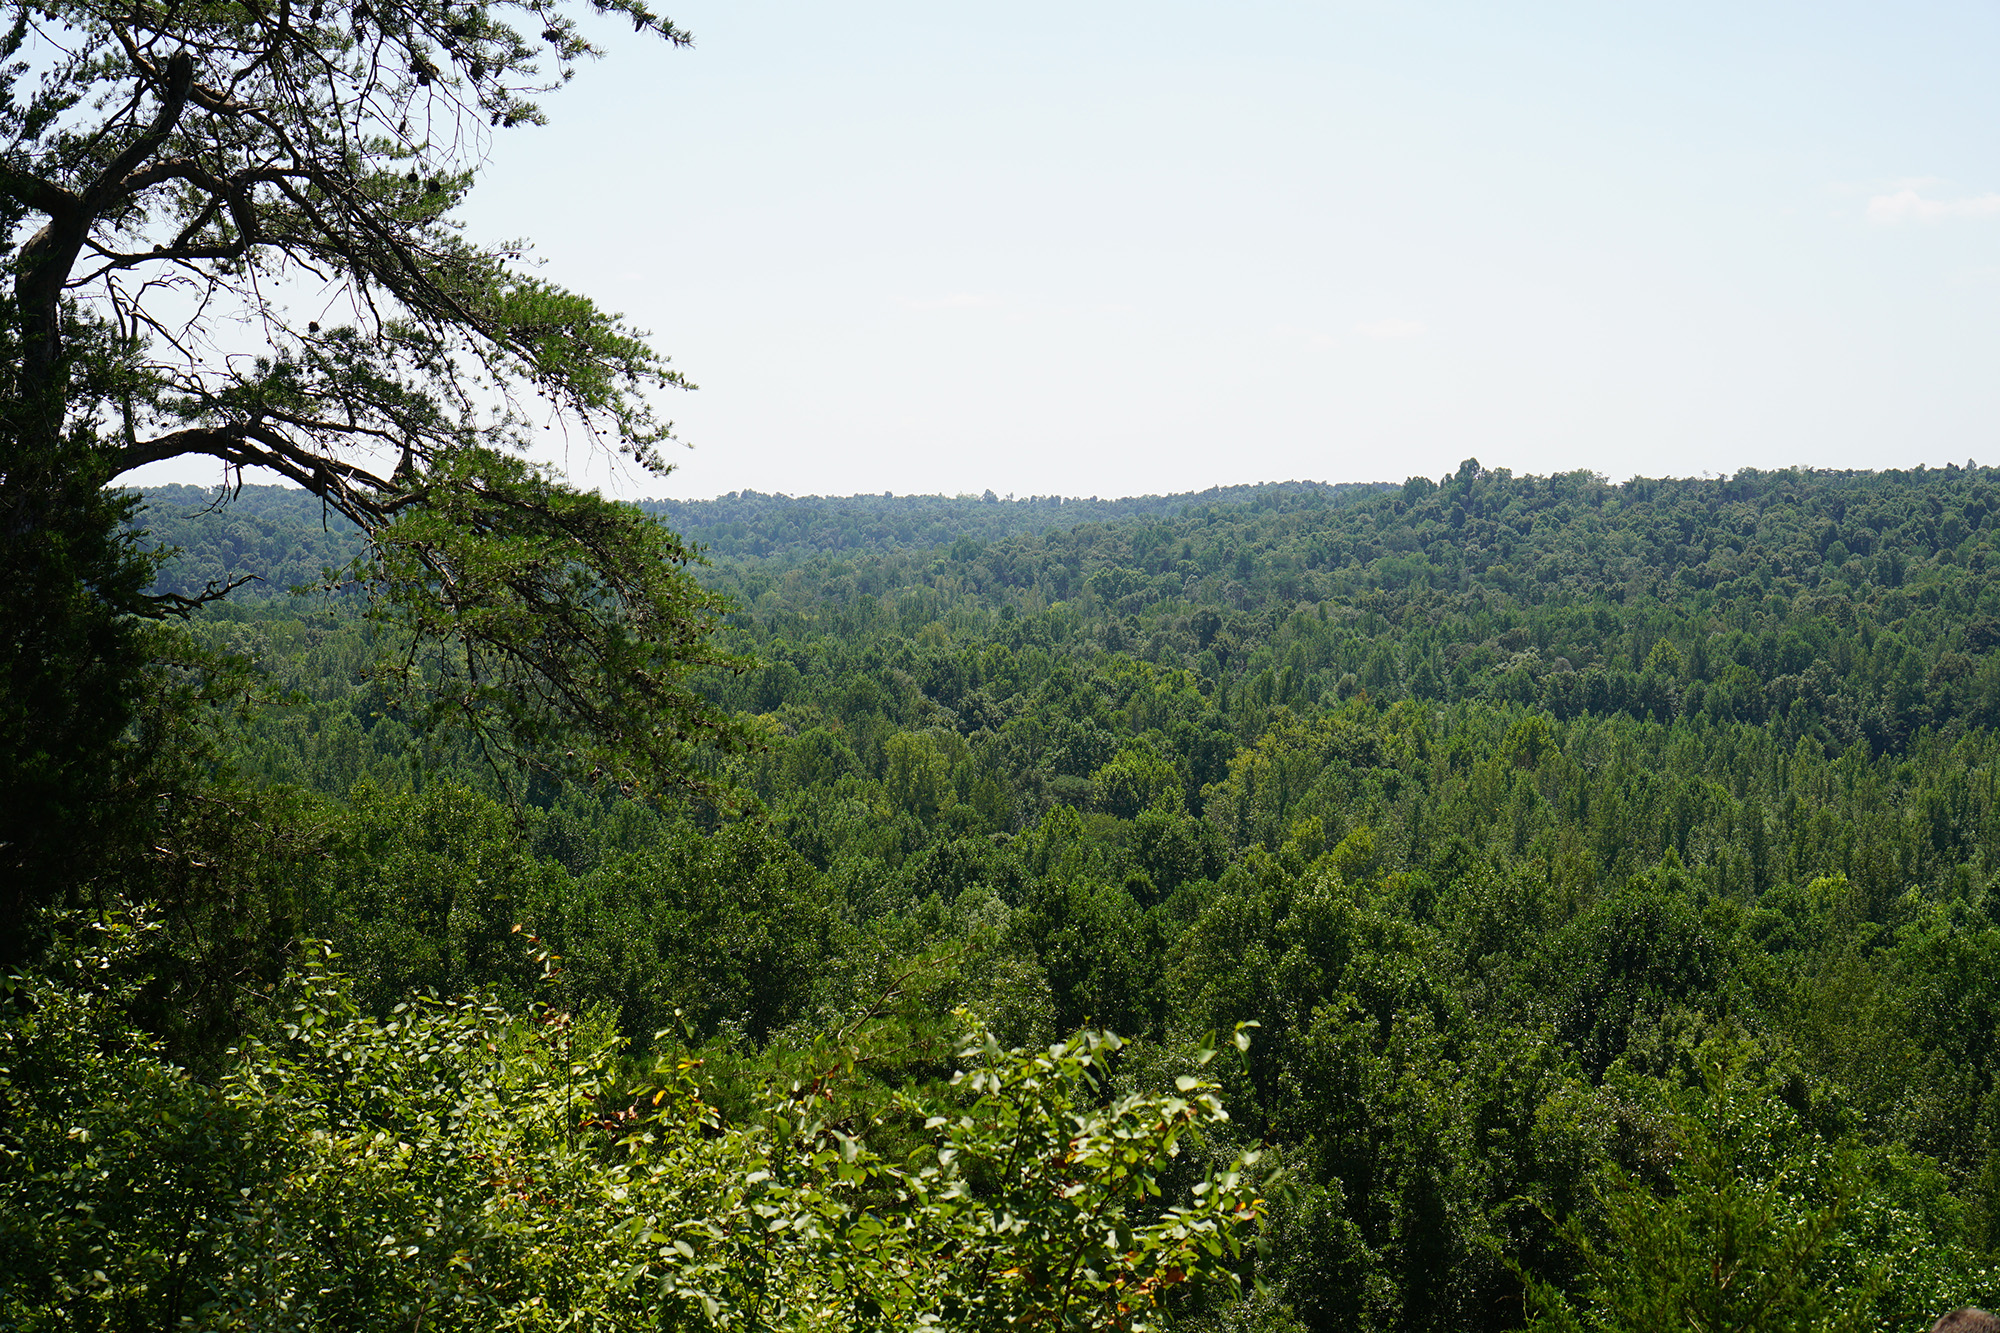 View from Hunter's Bluff, Jones-Keeney Wildlife Management Area, Kentucky / Darker than Green